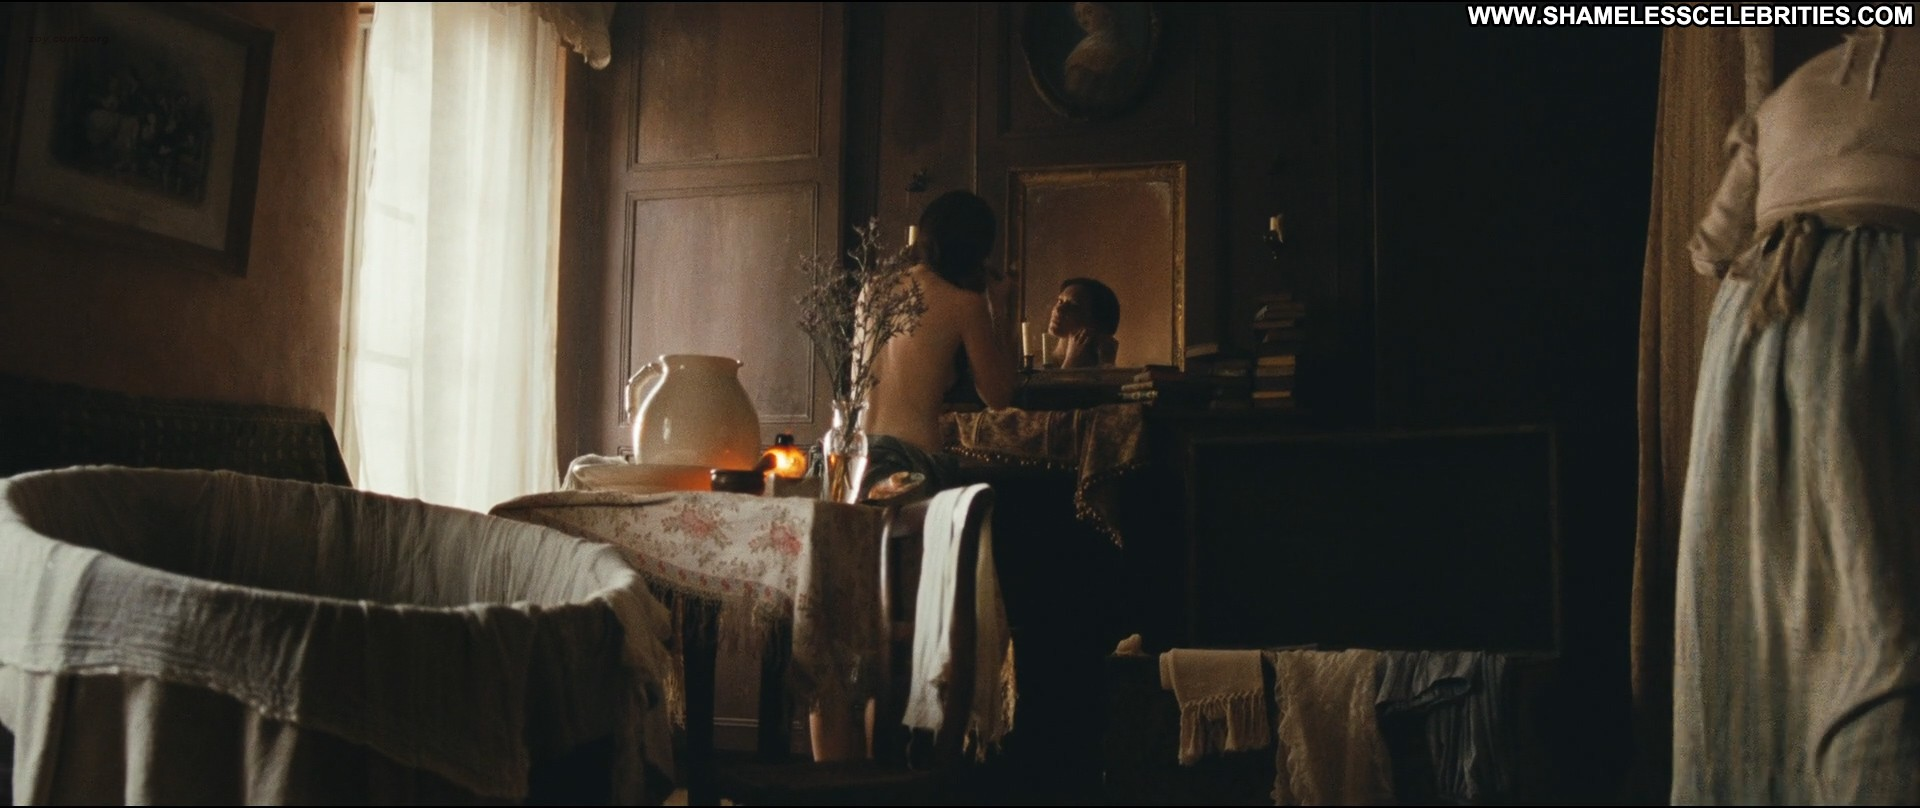 wasikowska madame bovary celebrity posing hot nude topless sex nice